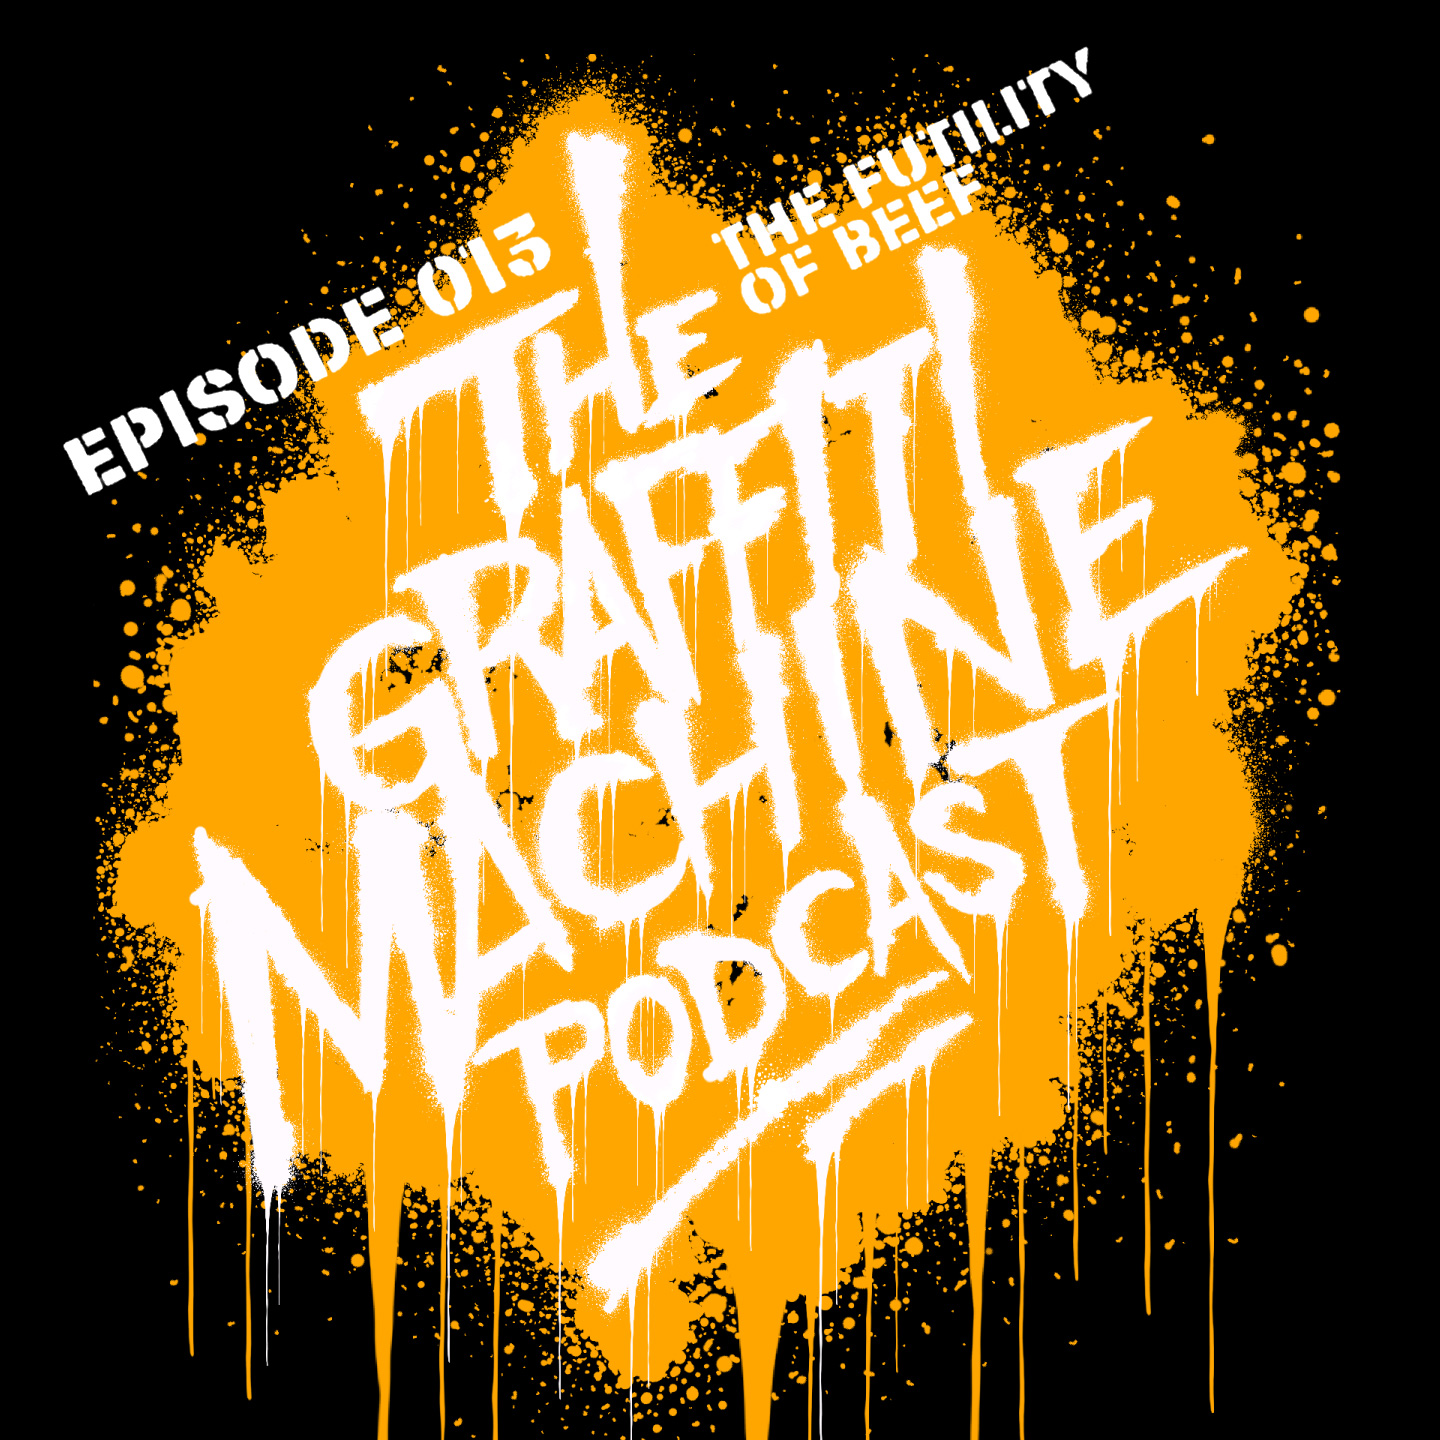 013: The Futility of Beef